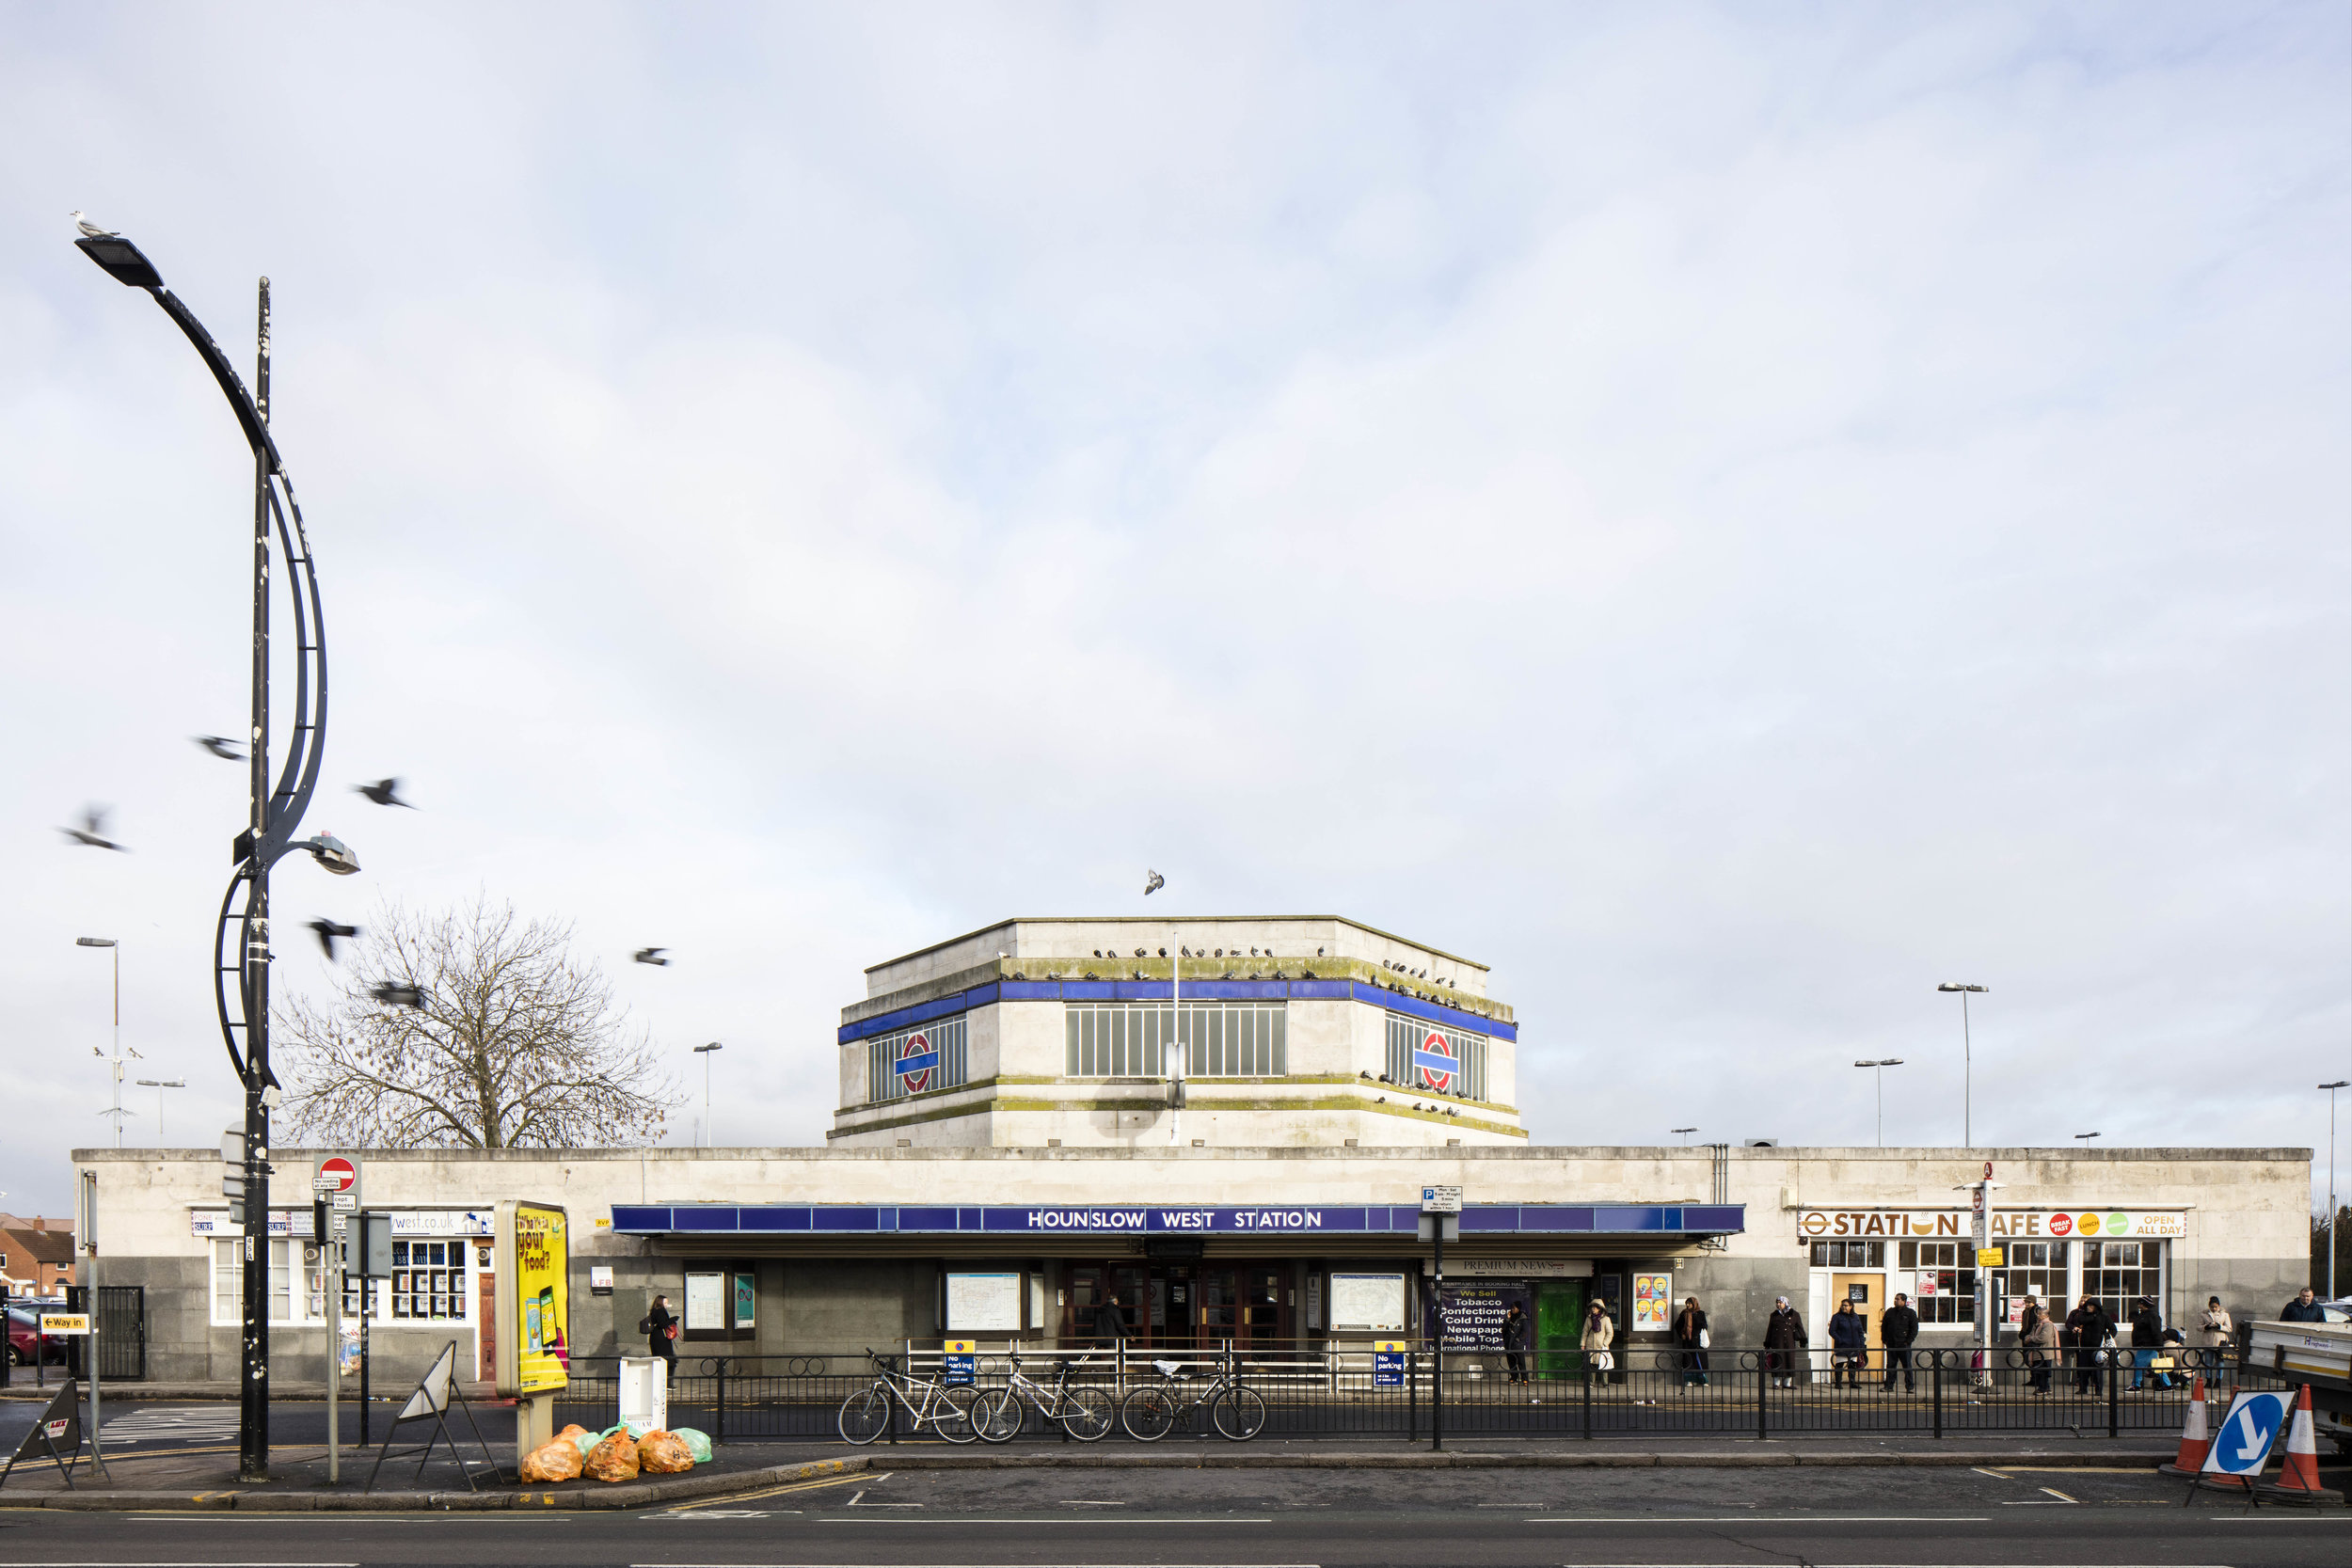 The Architecture of the Underground / Hounslow West Station.